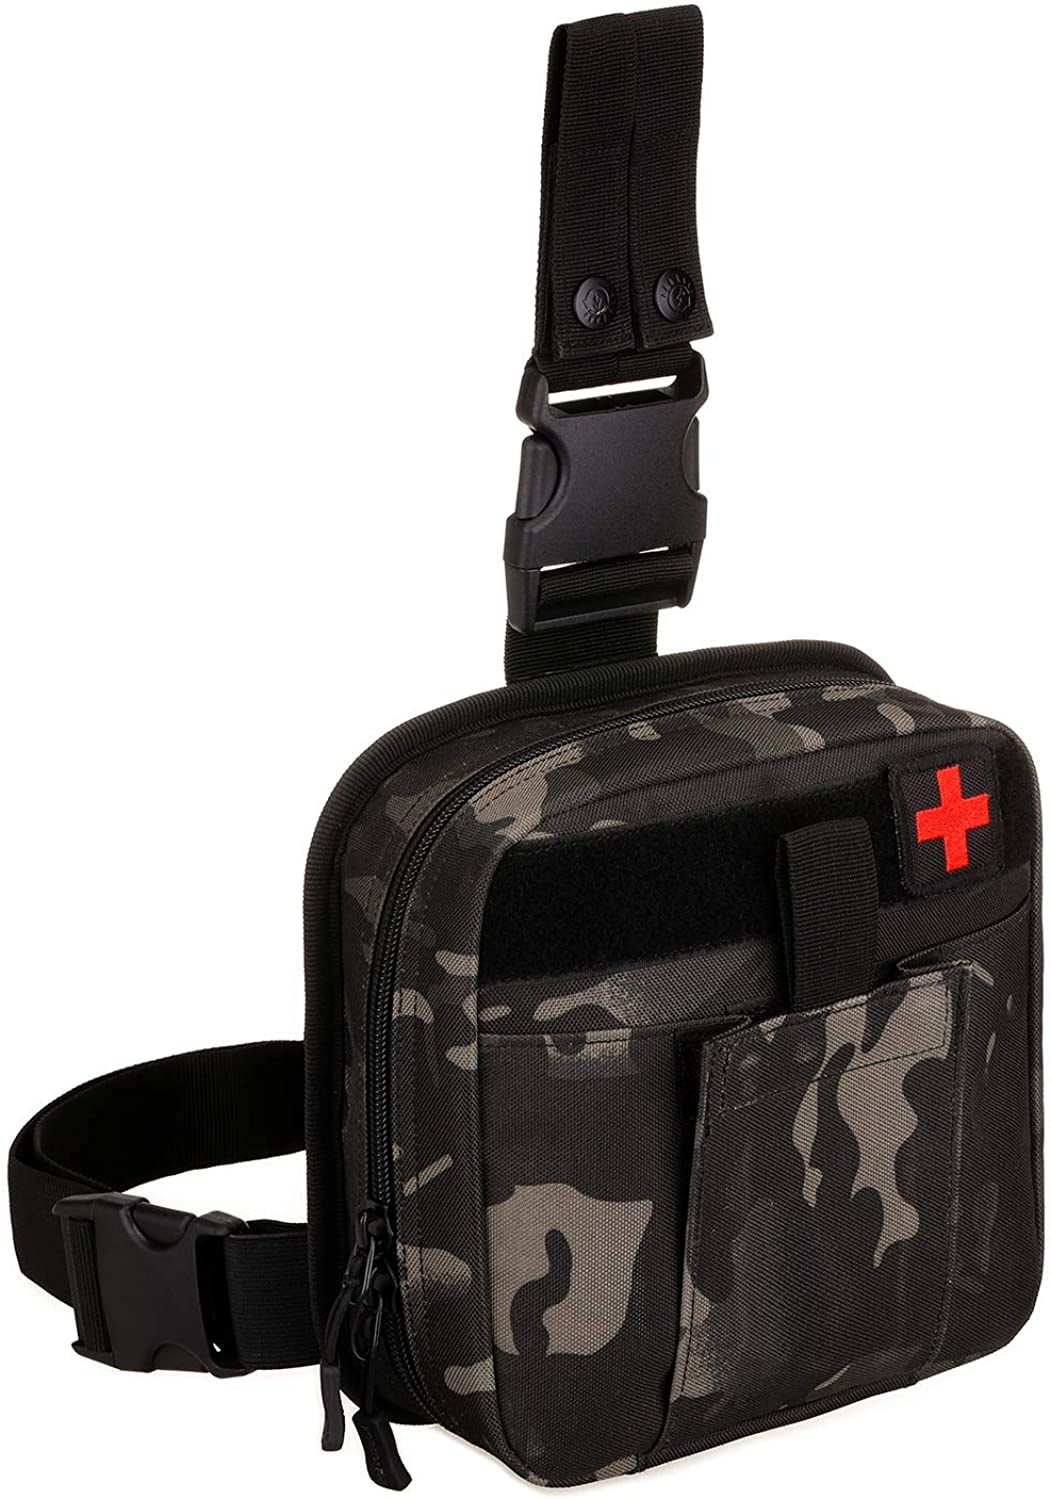 First Aid Kit Waist Bag, Men Nylon Belt Pack BagsAccessory First Aid Waist Molle Medical Bag Suitable for Camping Hiking Survival Activities